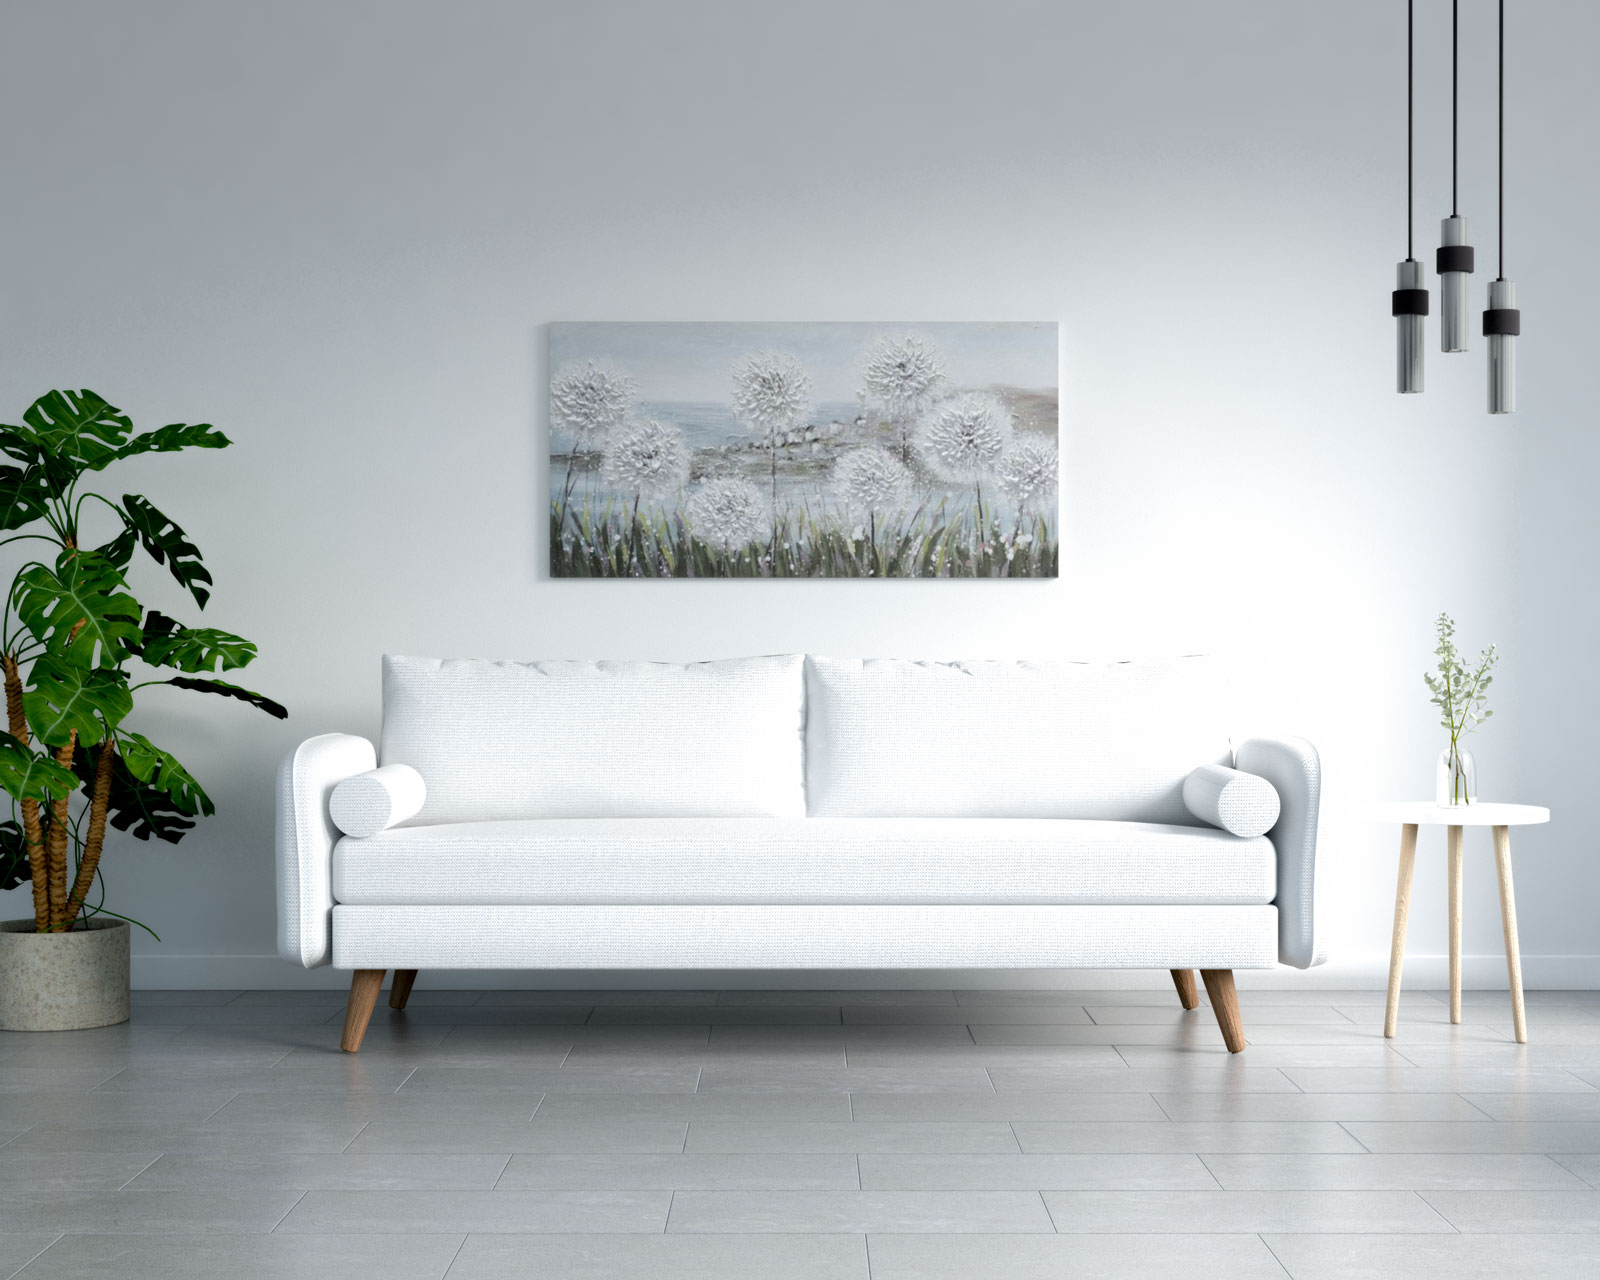 White couch in living room with gray flooring